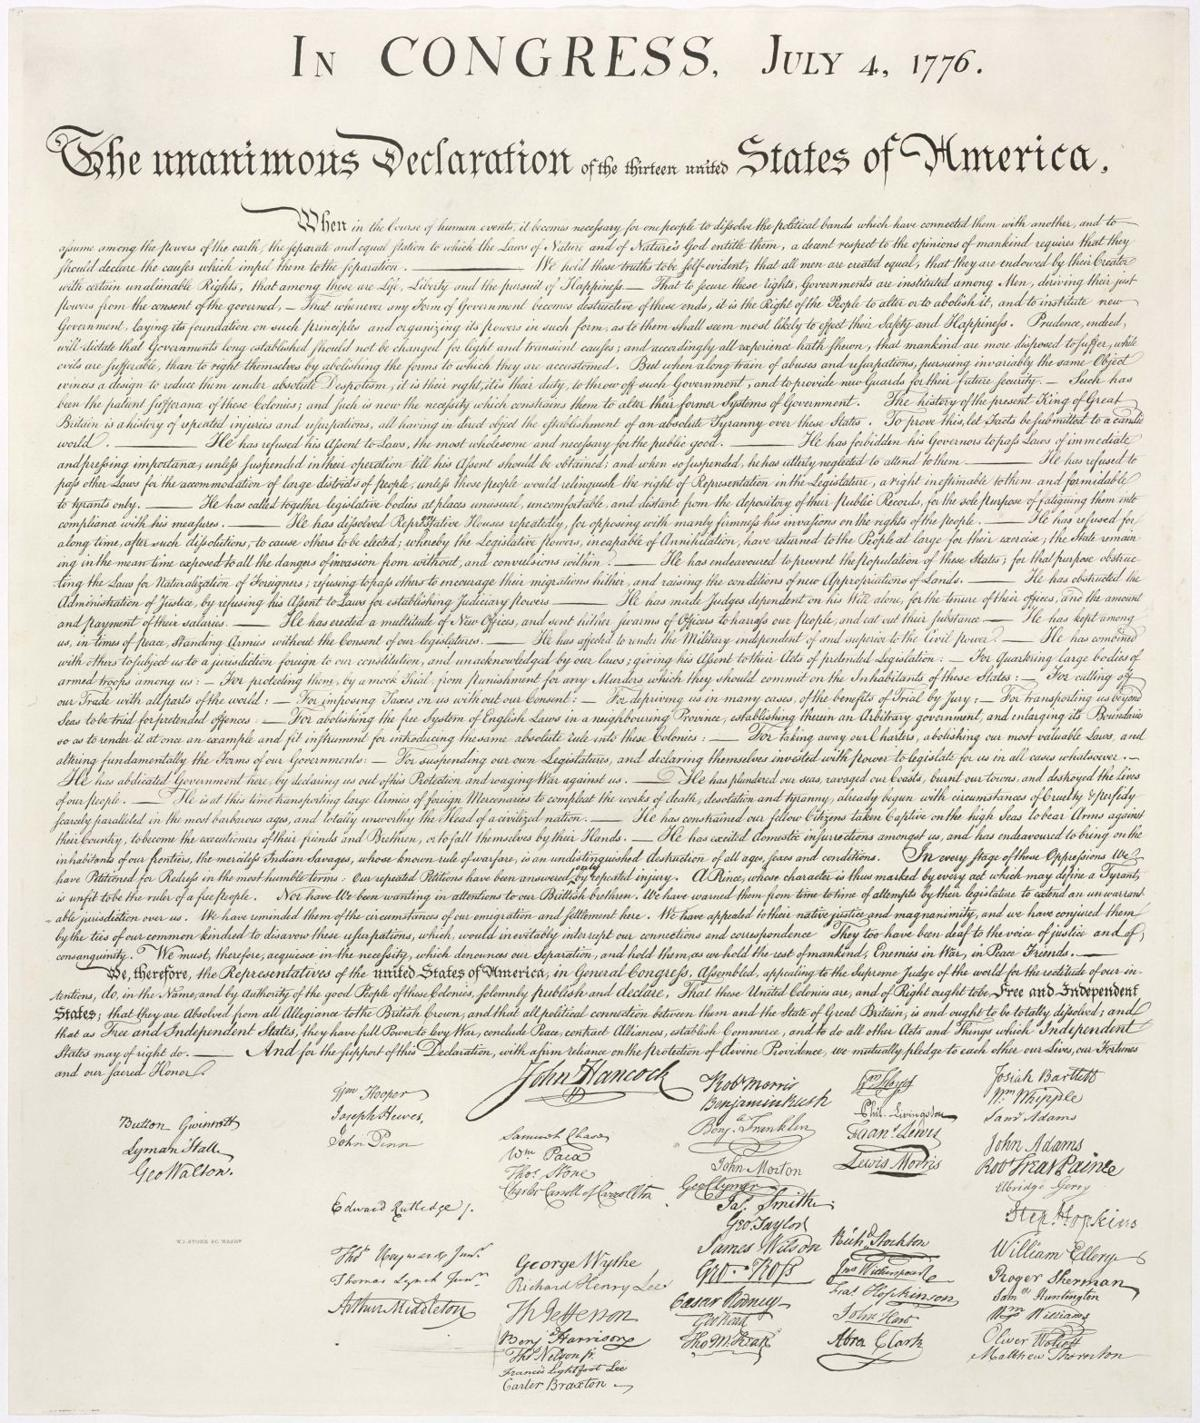 DAR to display early copy of Declaration of Independence